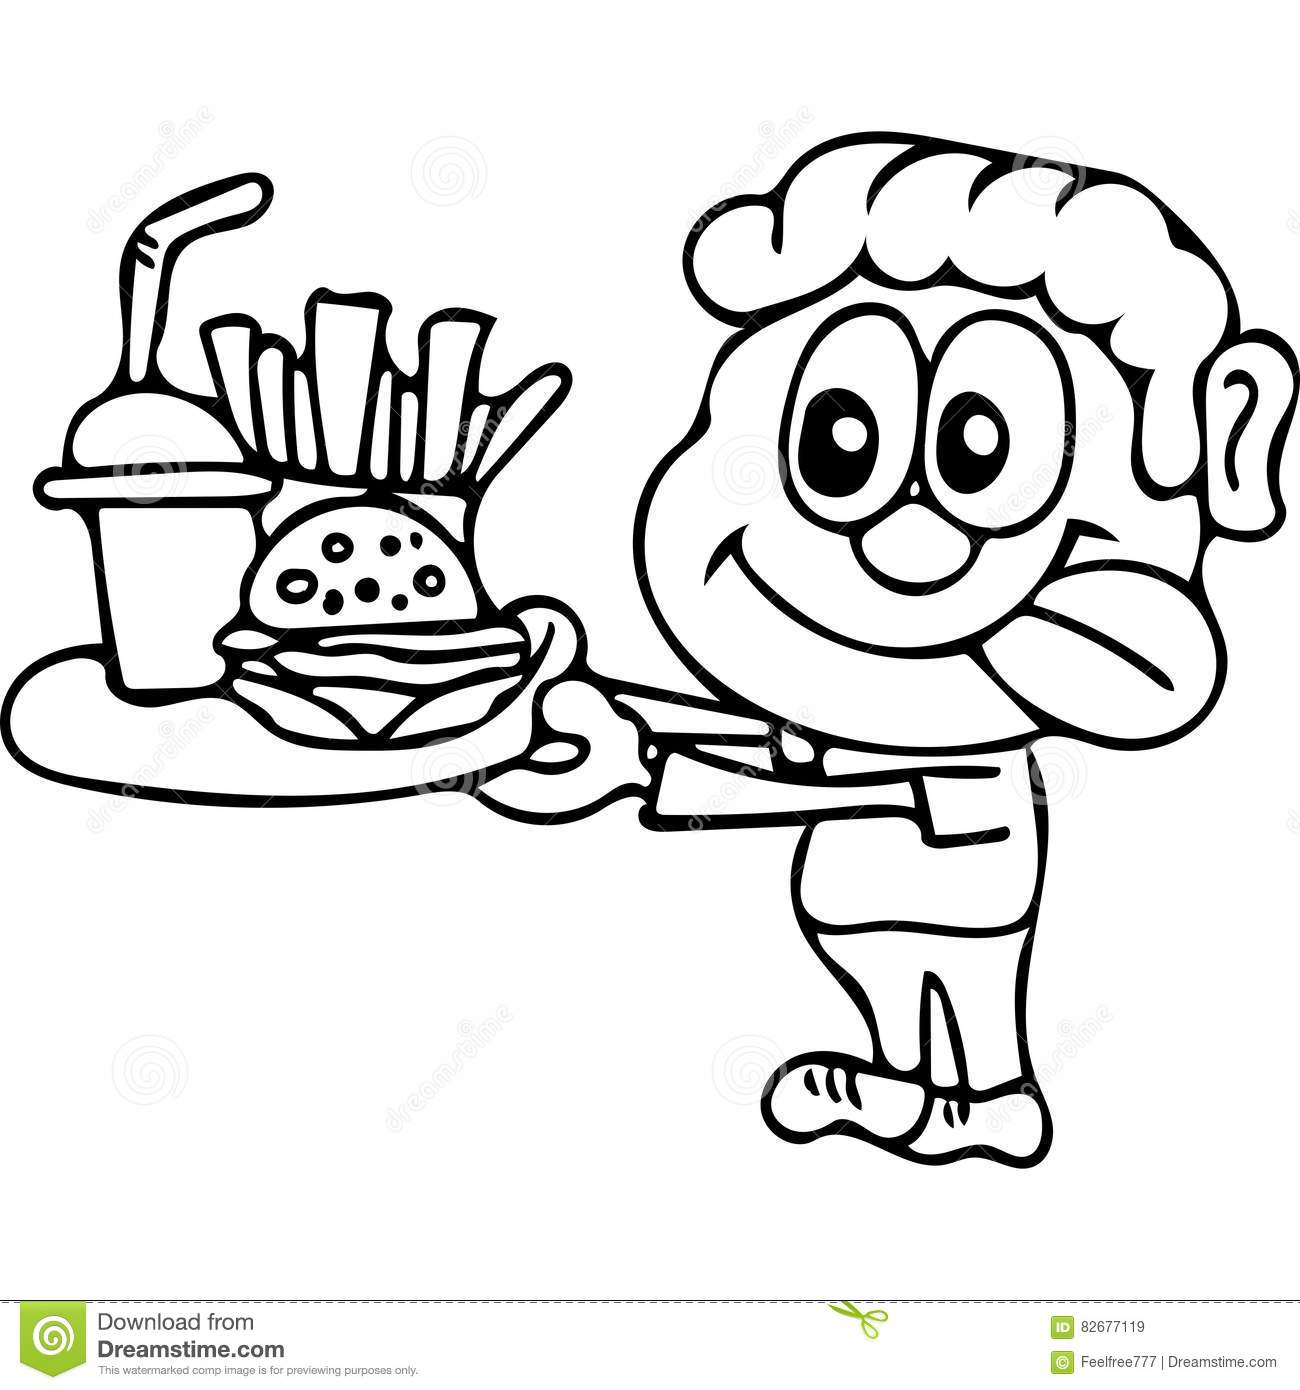 Unhealthy Food Coloring Pages At Getdrawings